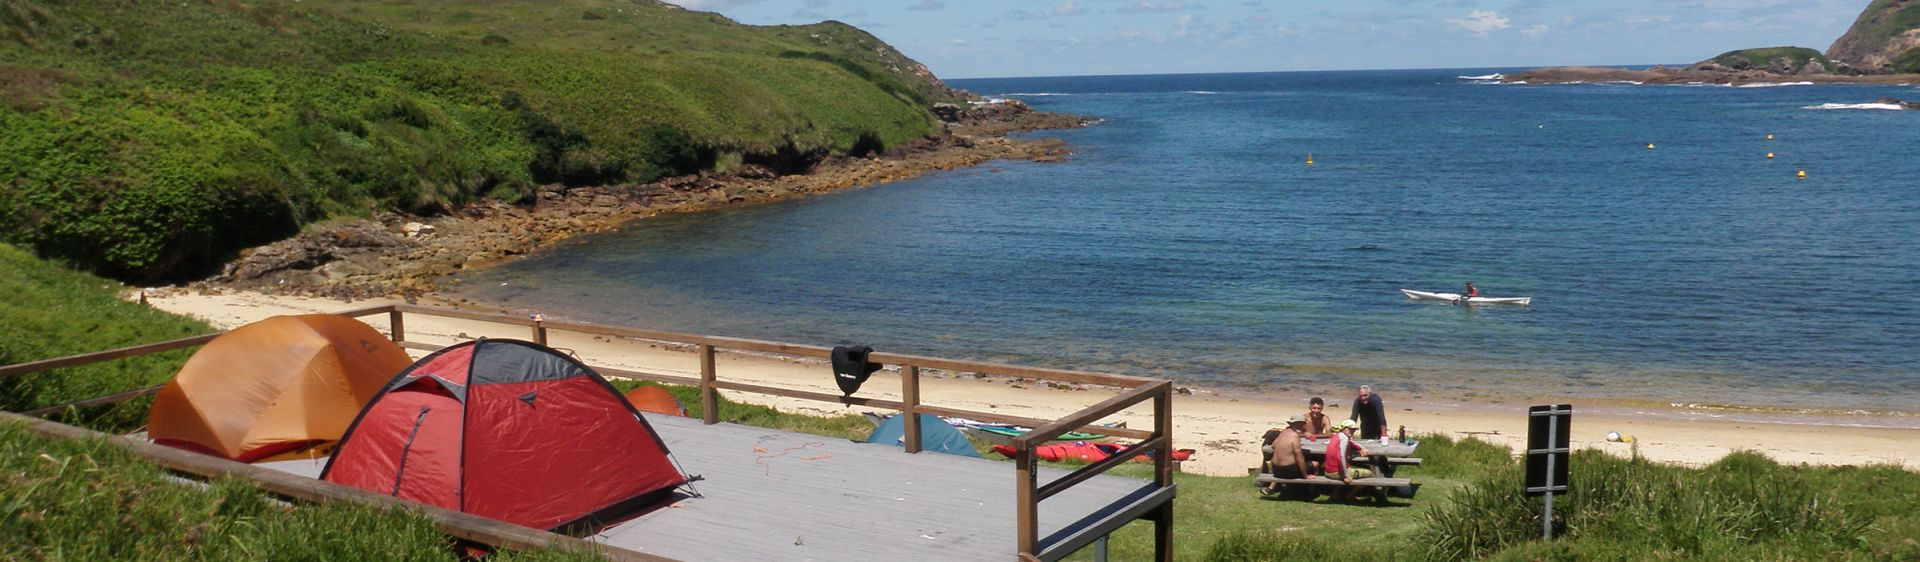 Coastal Accommodation - Broughton Island Campground - Hawks Nest